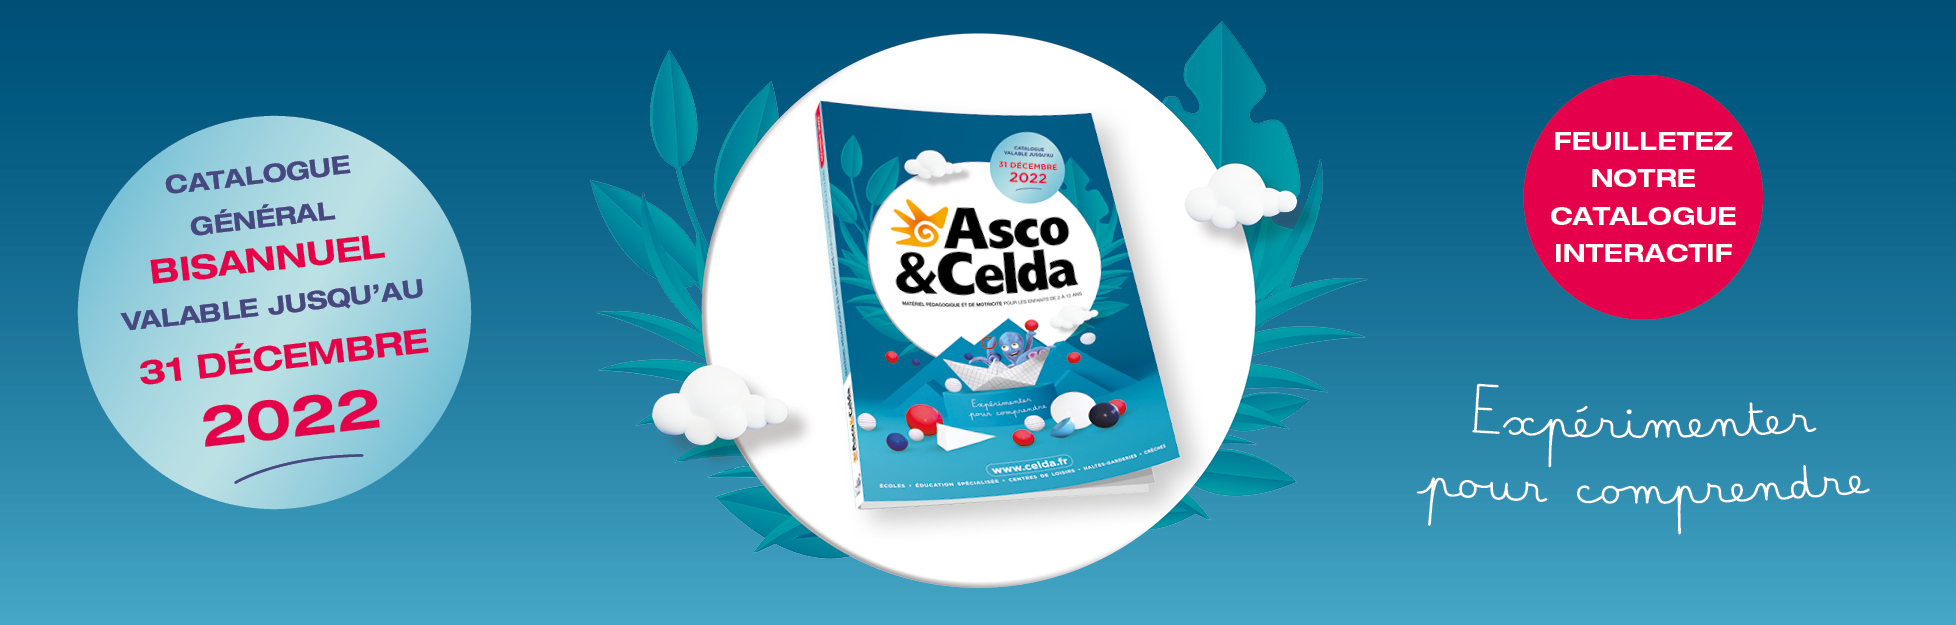 Asco et Celda catalogue 2021/2022